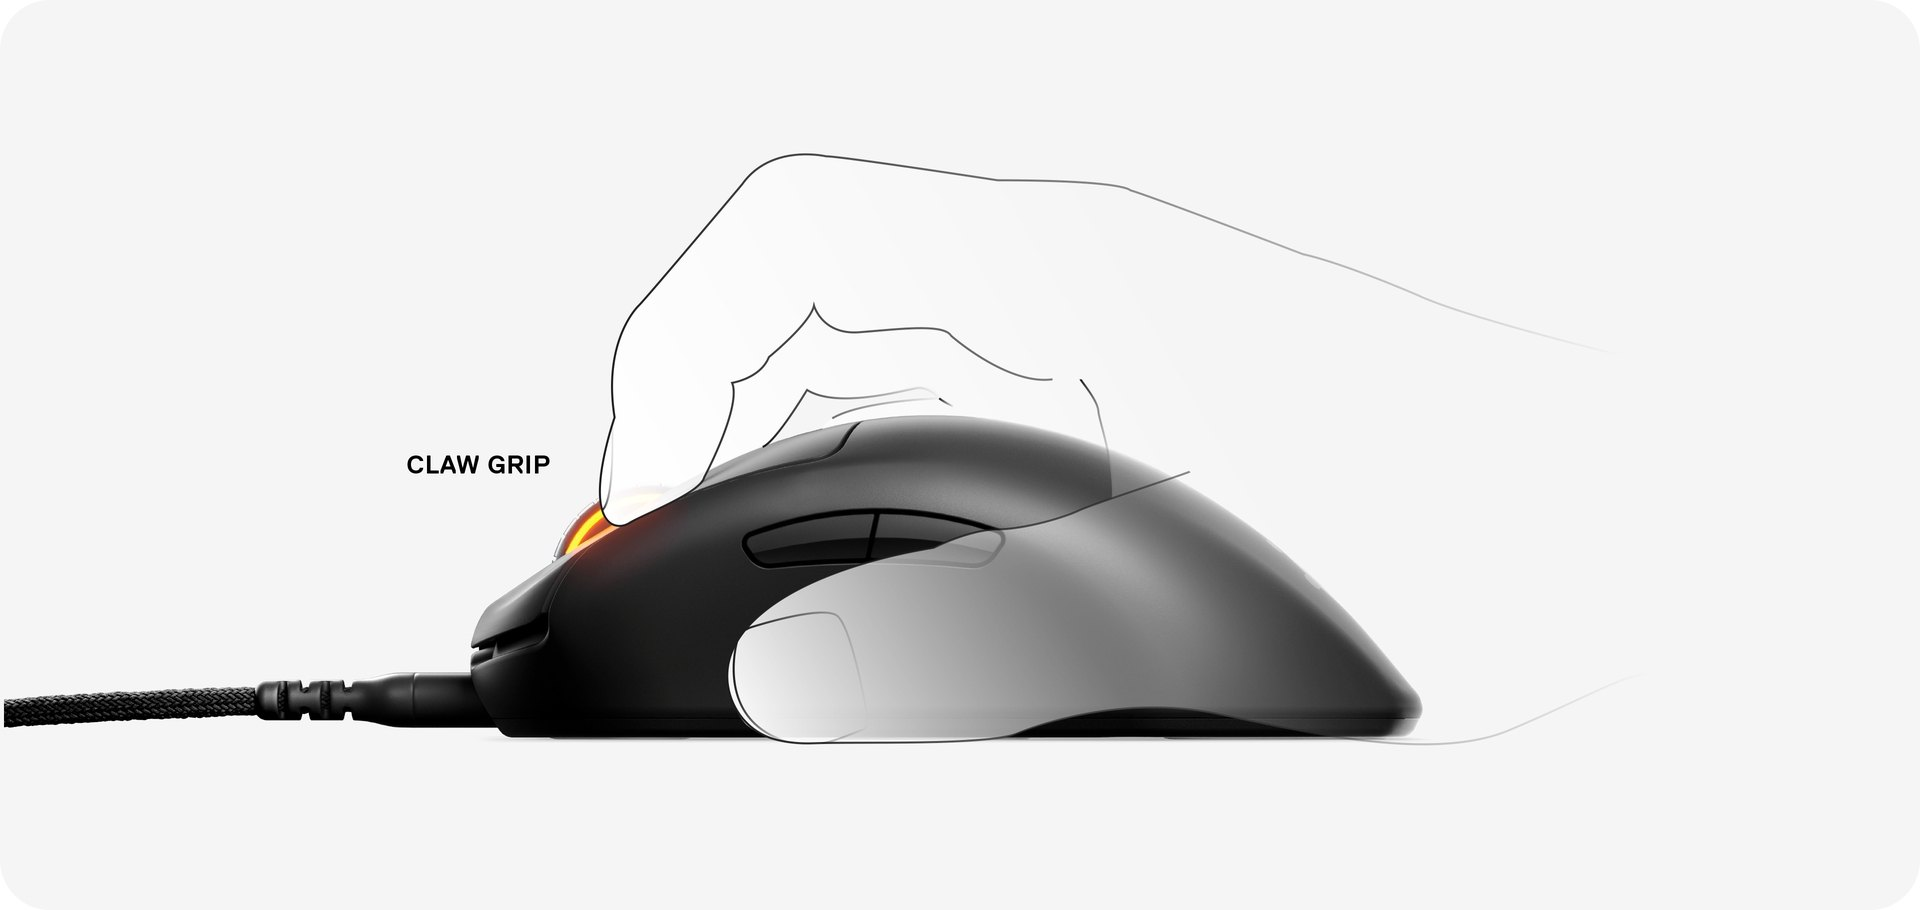 Illustration of a hand using the Prime Mini mouse with a claw grip.